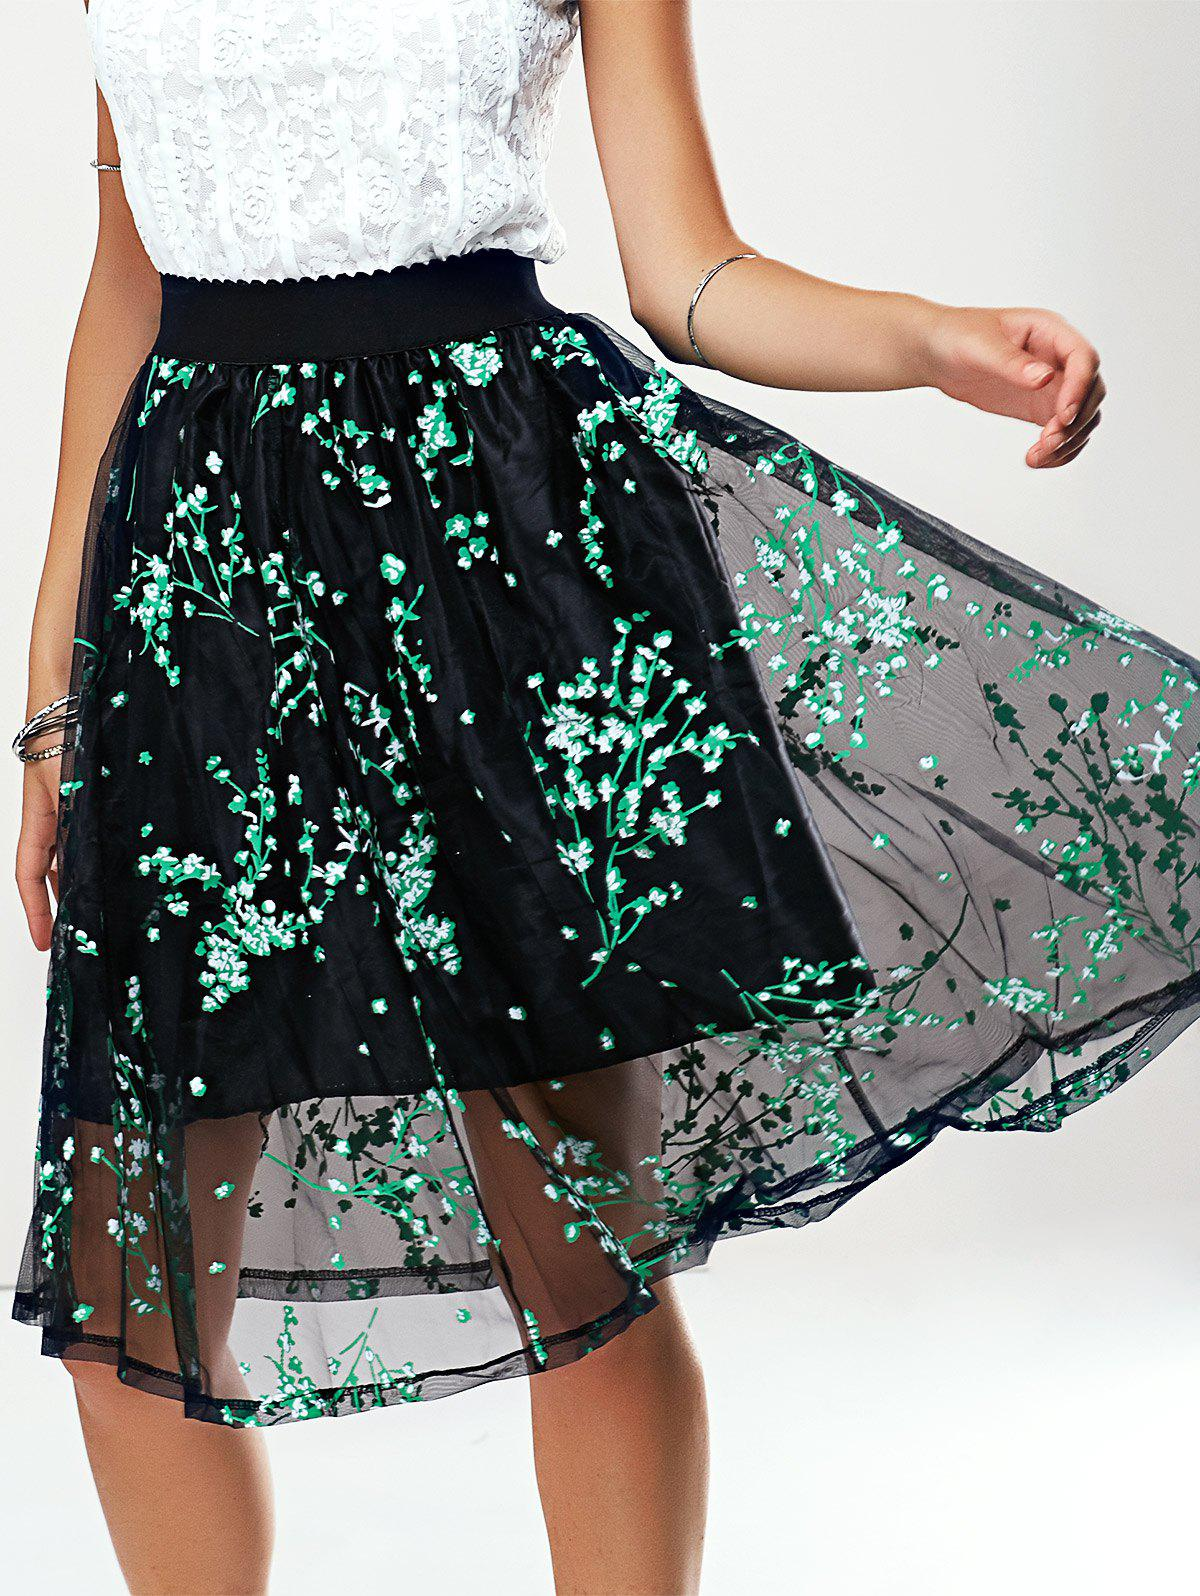 Stylish Women's A-Line Print Mesh Skirt - GREEN ONE SIZE(FIT SIZE XS TO M)